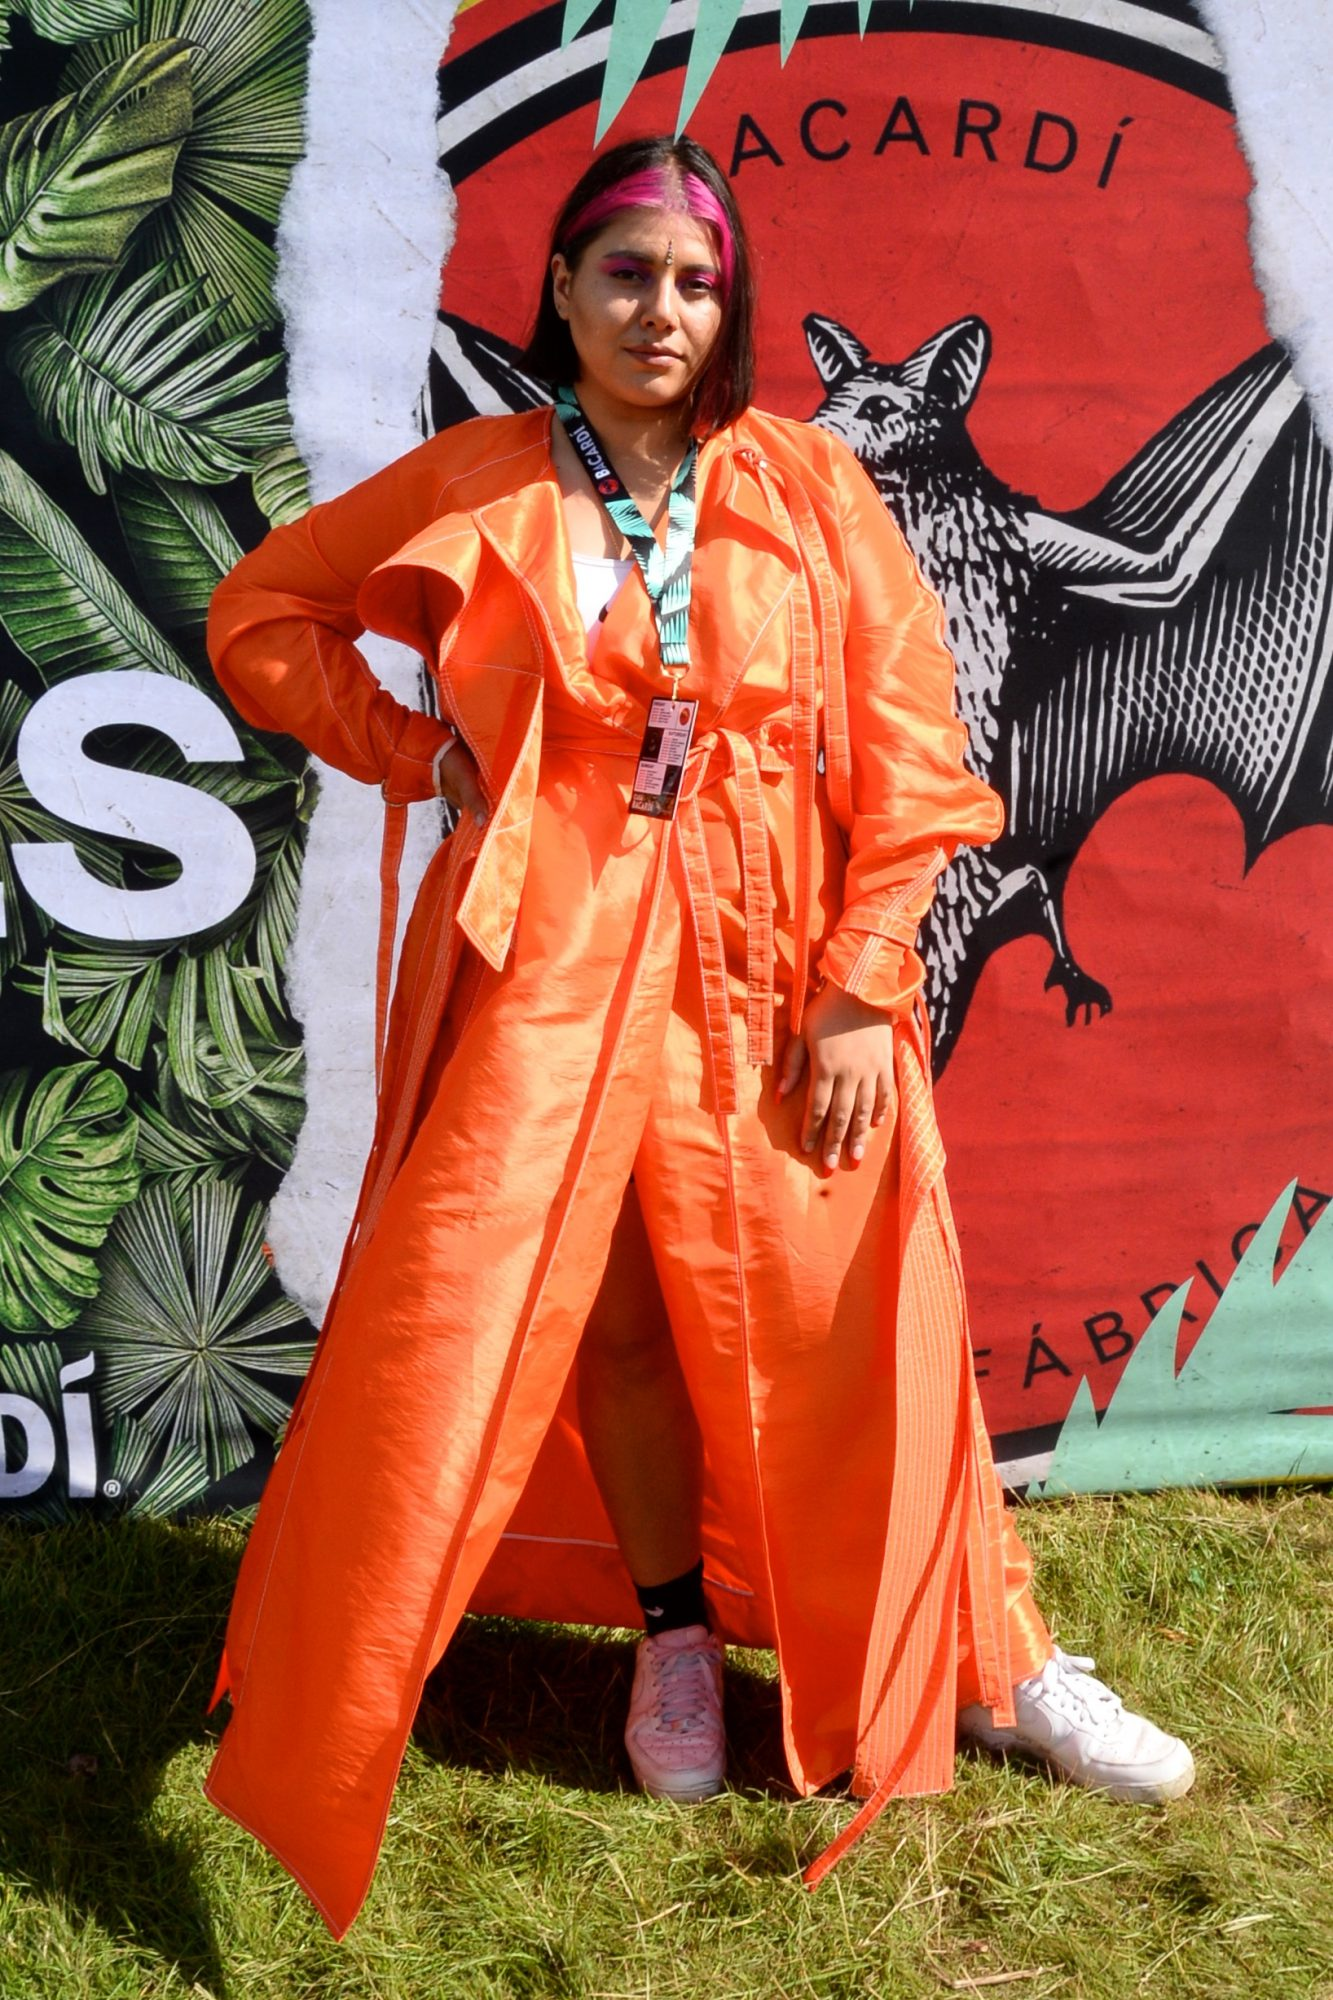 31st August 2019. Tara Stewart pictured at Casa Bacardi on day 2 of Electric Picnic. Photo: Justin Farrelly.